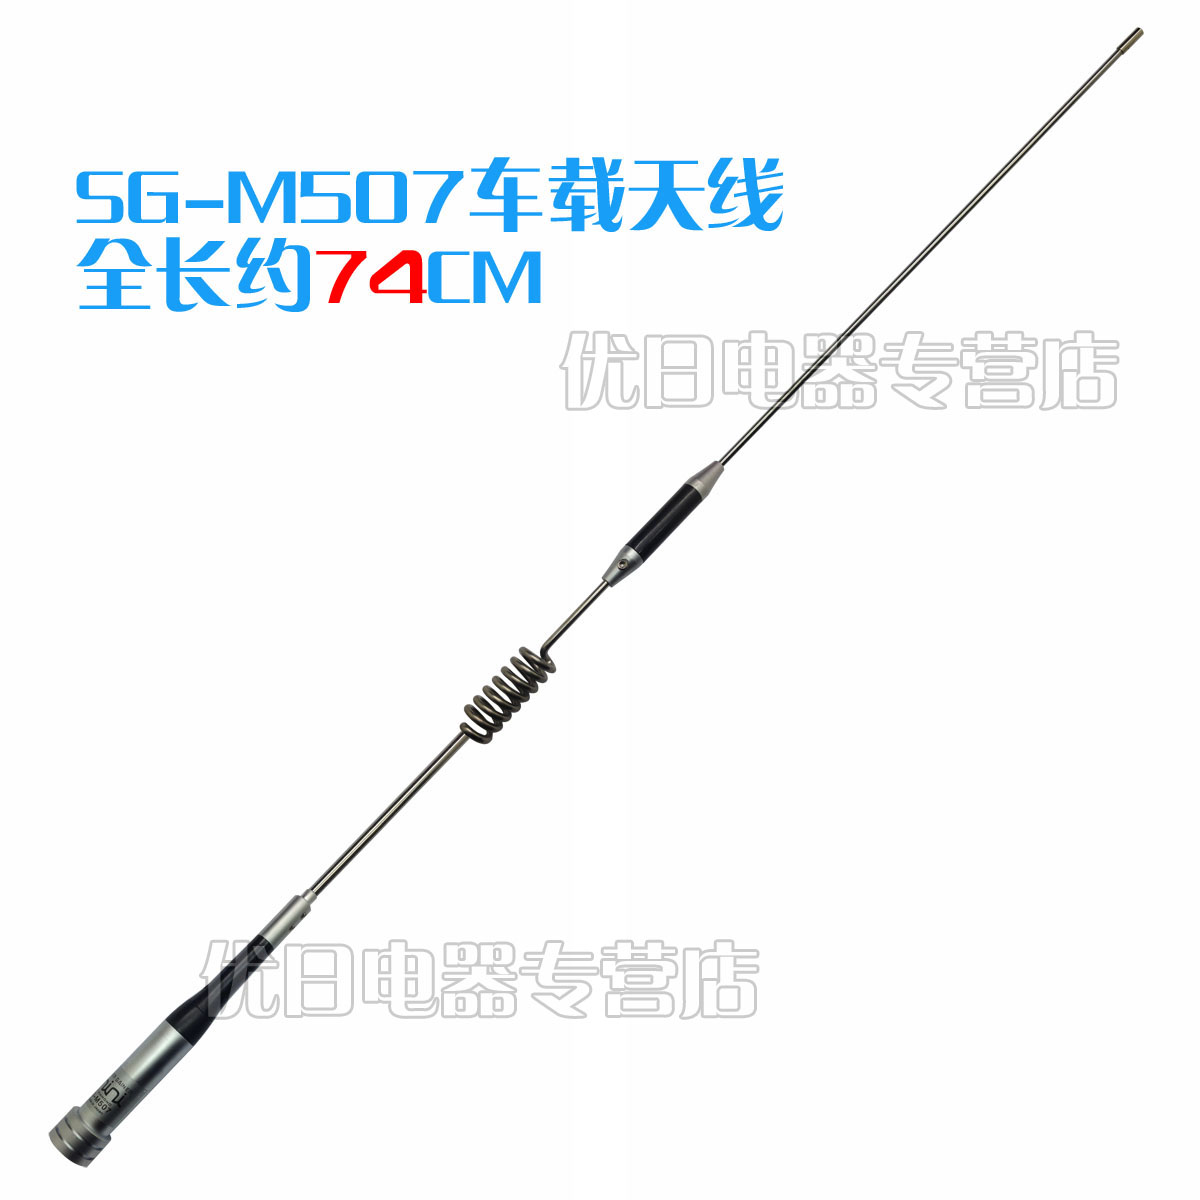 Excellent day â â car antenna sg-m507 car pole â â sg-507 car seedling â double segment car antenna car antenna